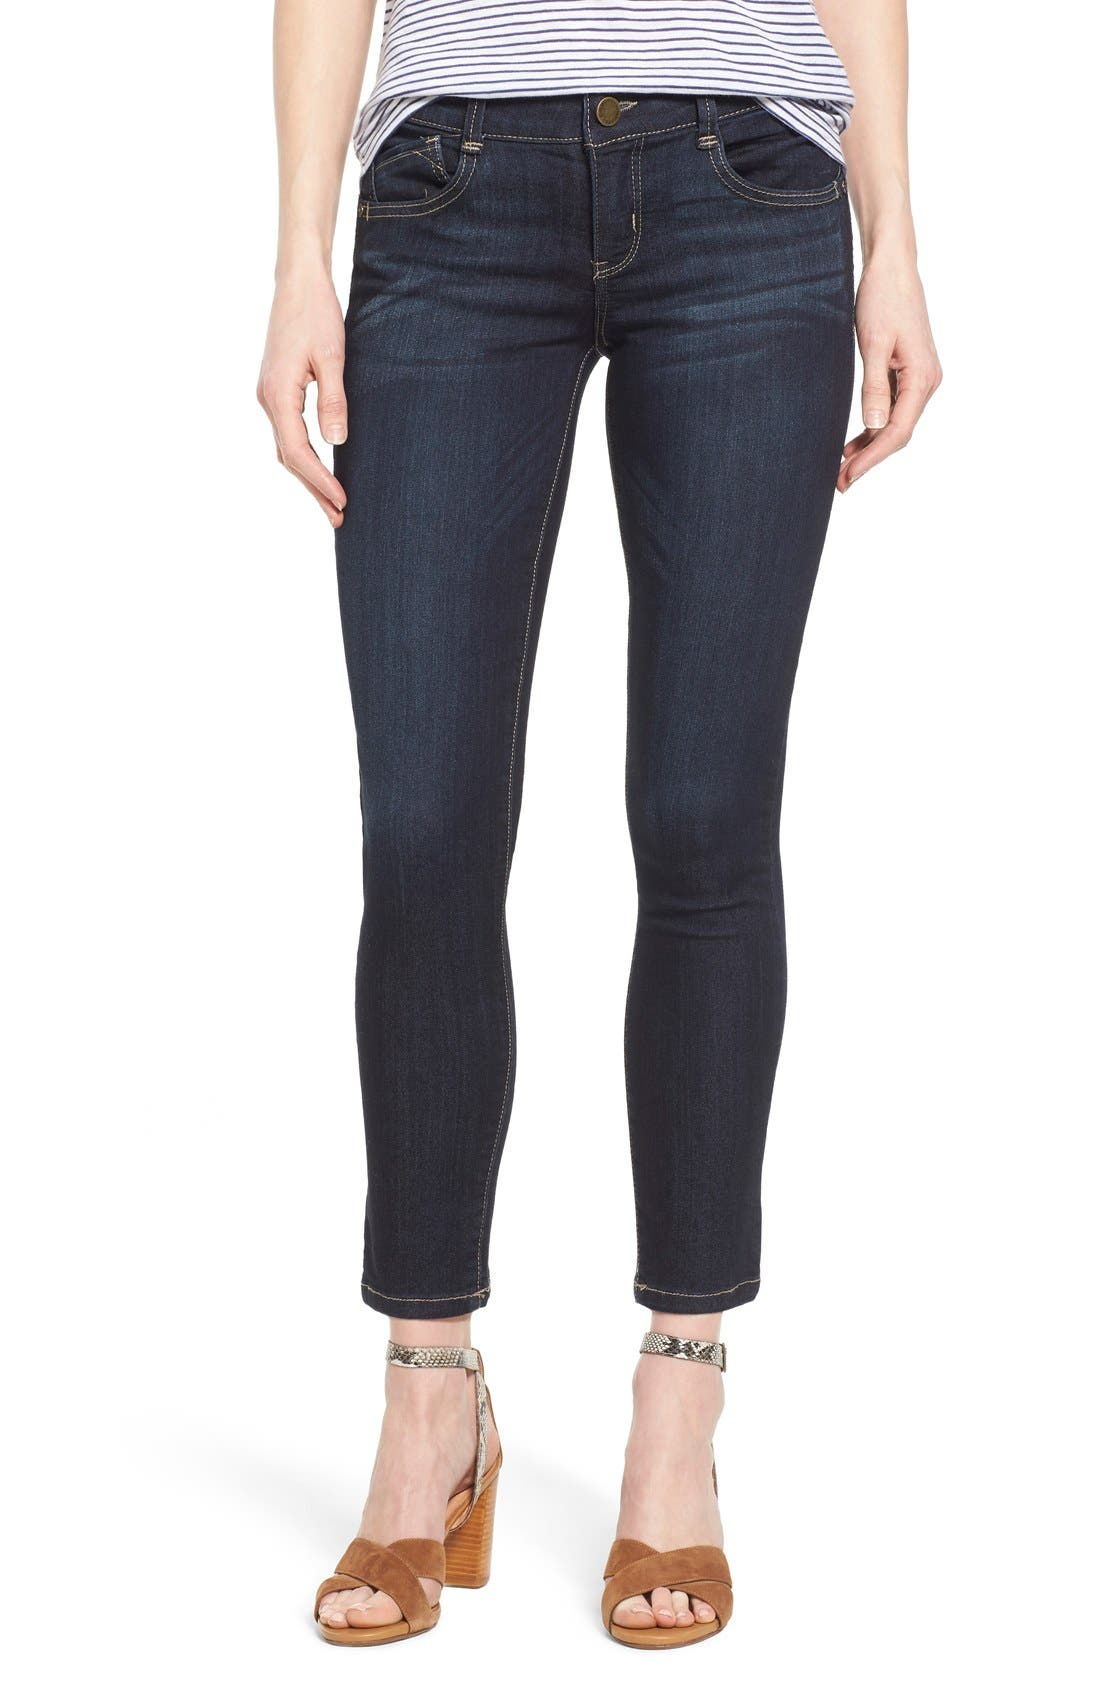 Alternate Image 1 Selected - Wit & Wisdom 'Ab Solution' Stretch Ankle Skinny Jeans (Regular & Petite) (Nordstrom Exclusive)